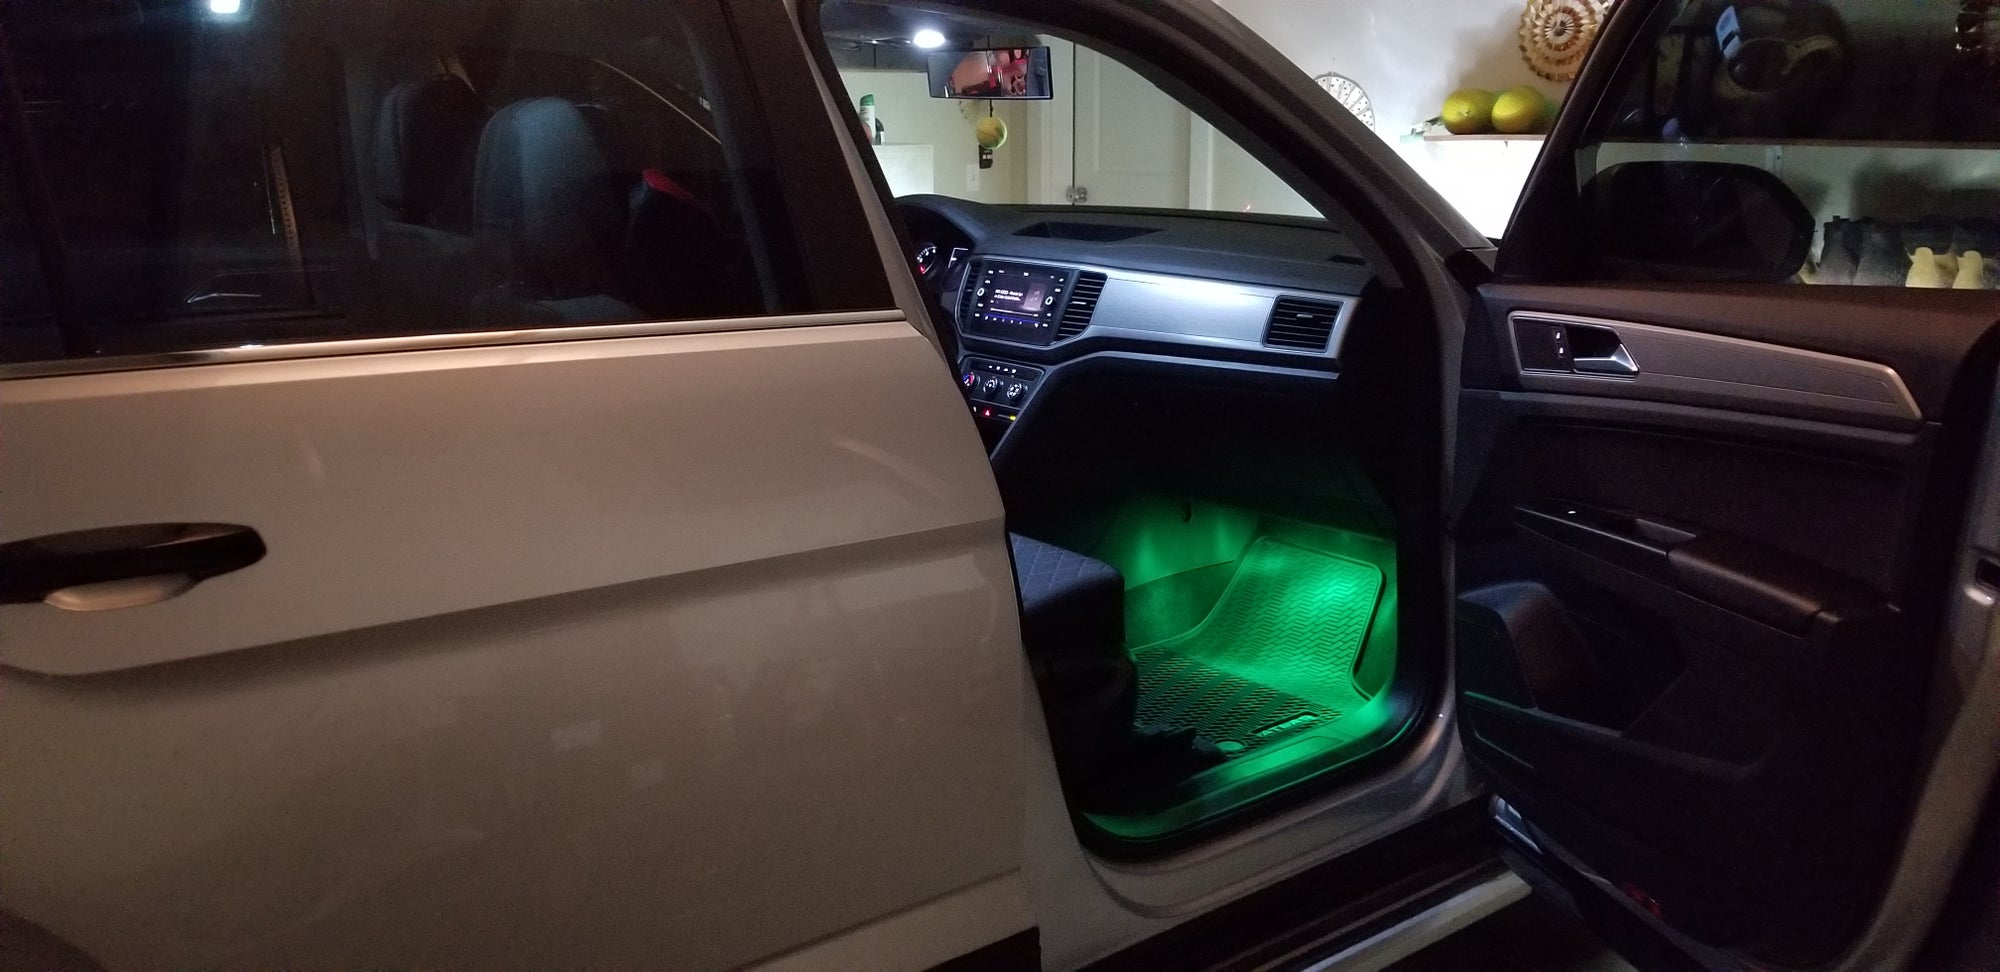 remote control color changing footwell leds fits volkswagen atlas all years and trims deautokey. Black Bedroom Furniture Sets. Home Design Ideas